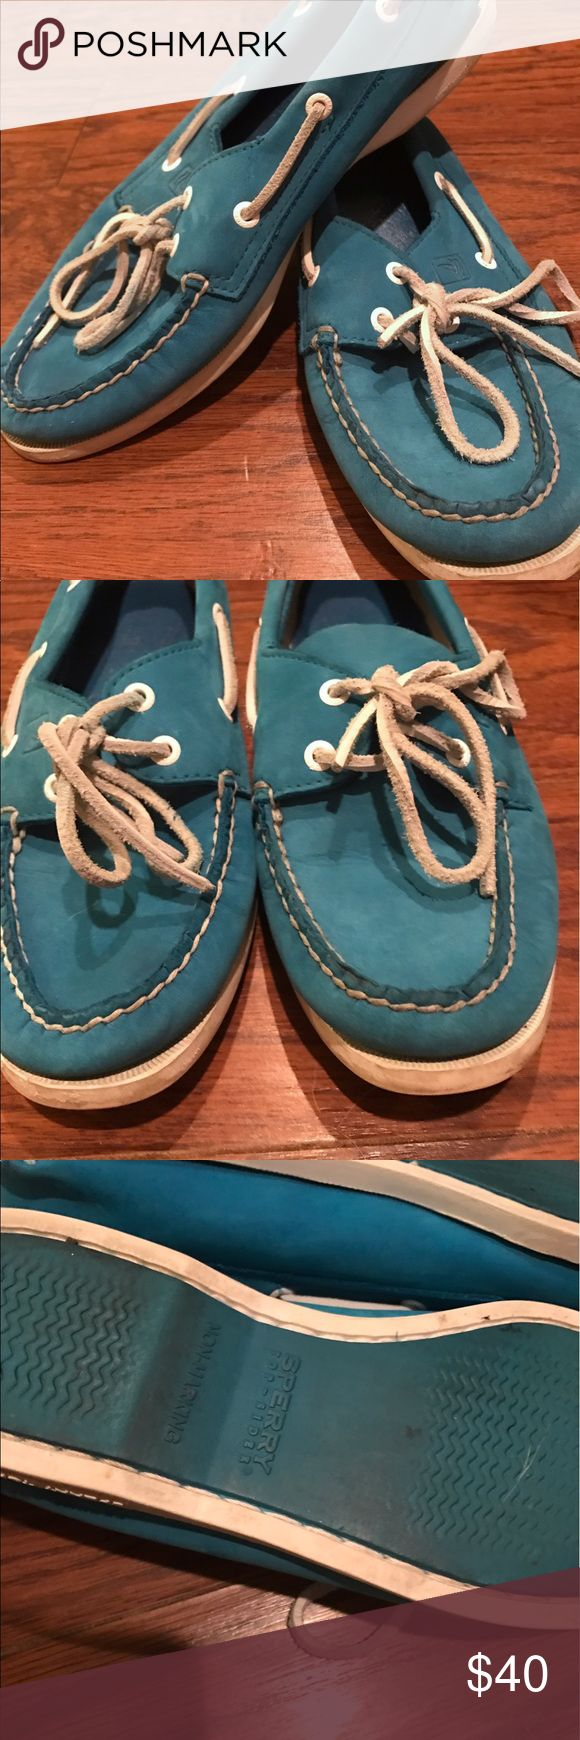 Selling this Sperry Topsiders Turquoise on Poshmark! My username is: kthigpen. #shopmycloset #poshmark #fashion #shopping #style #forsale #Sperry #Shoes